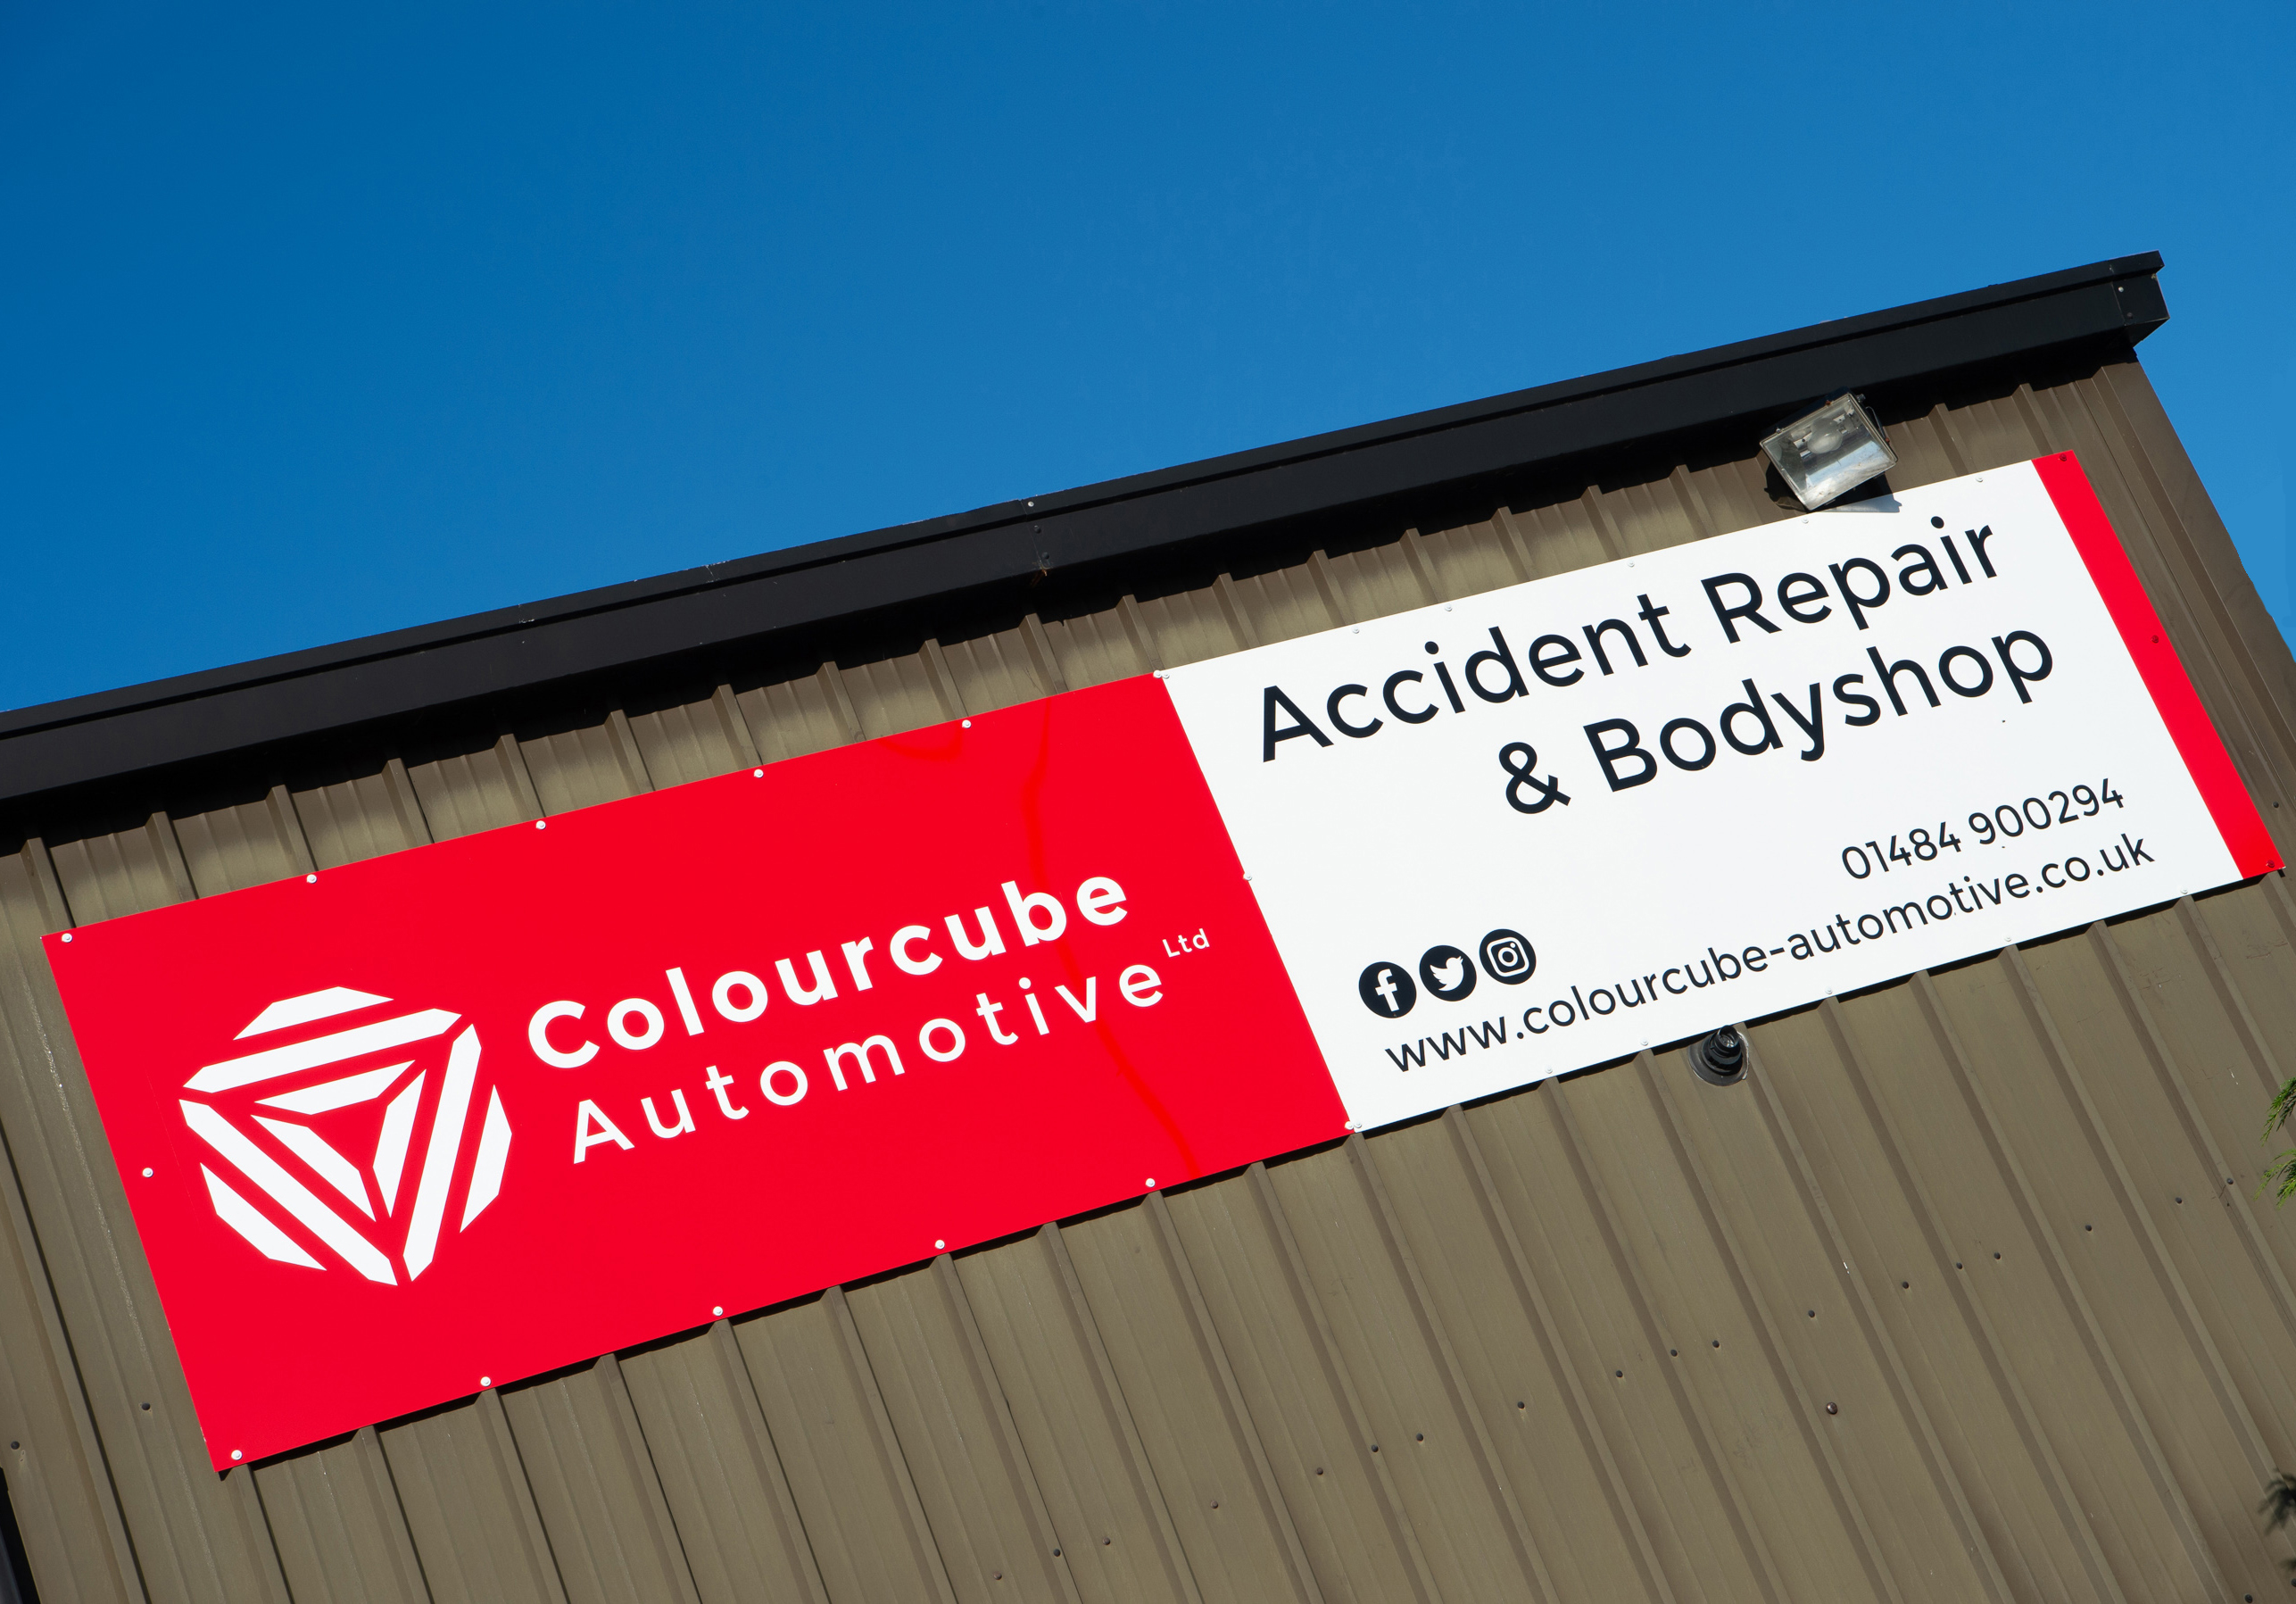 Colourcube Automotive - Your Local Award Winning Accident Repair Centre!